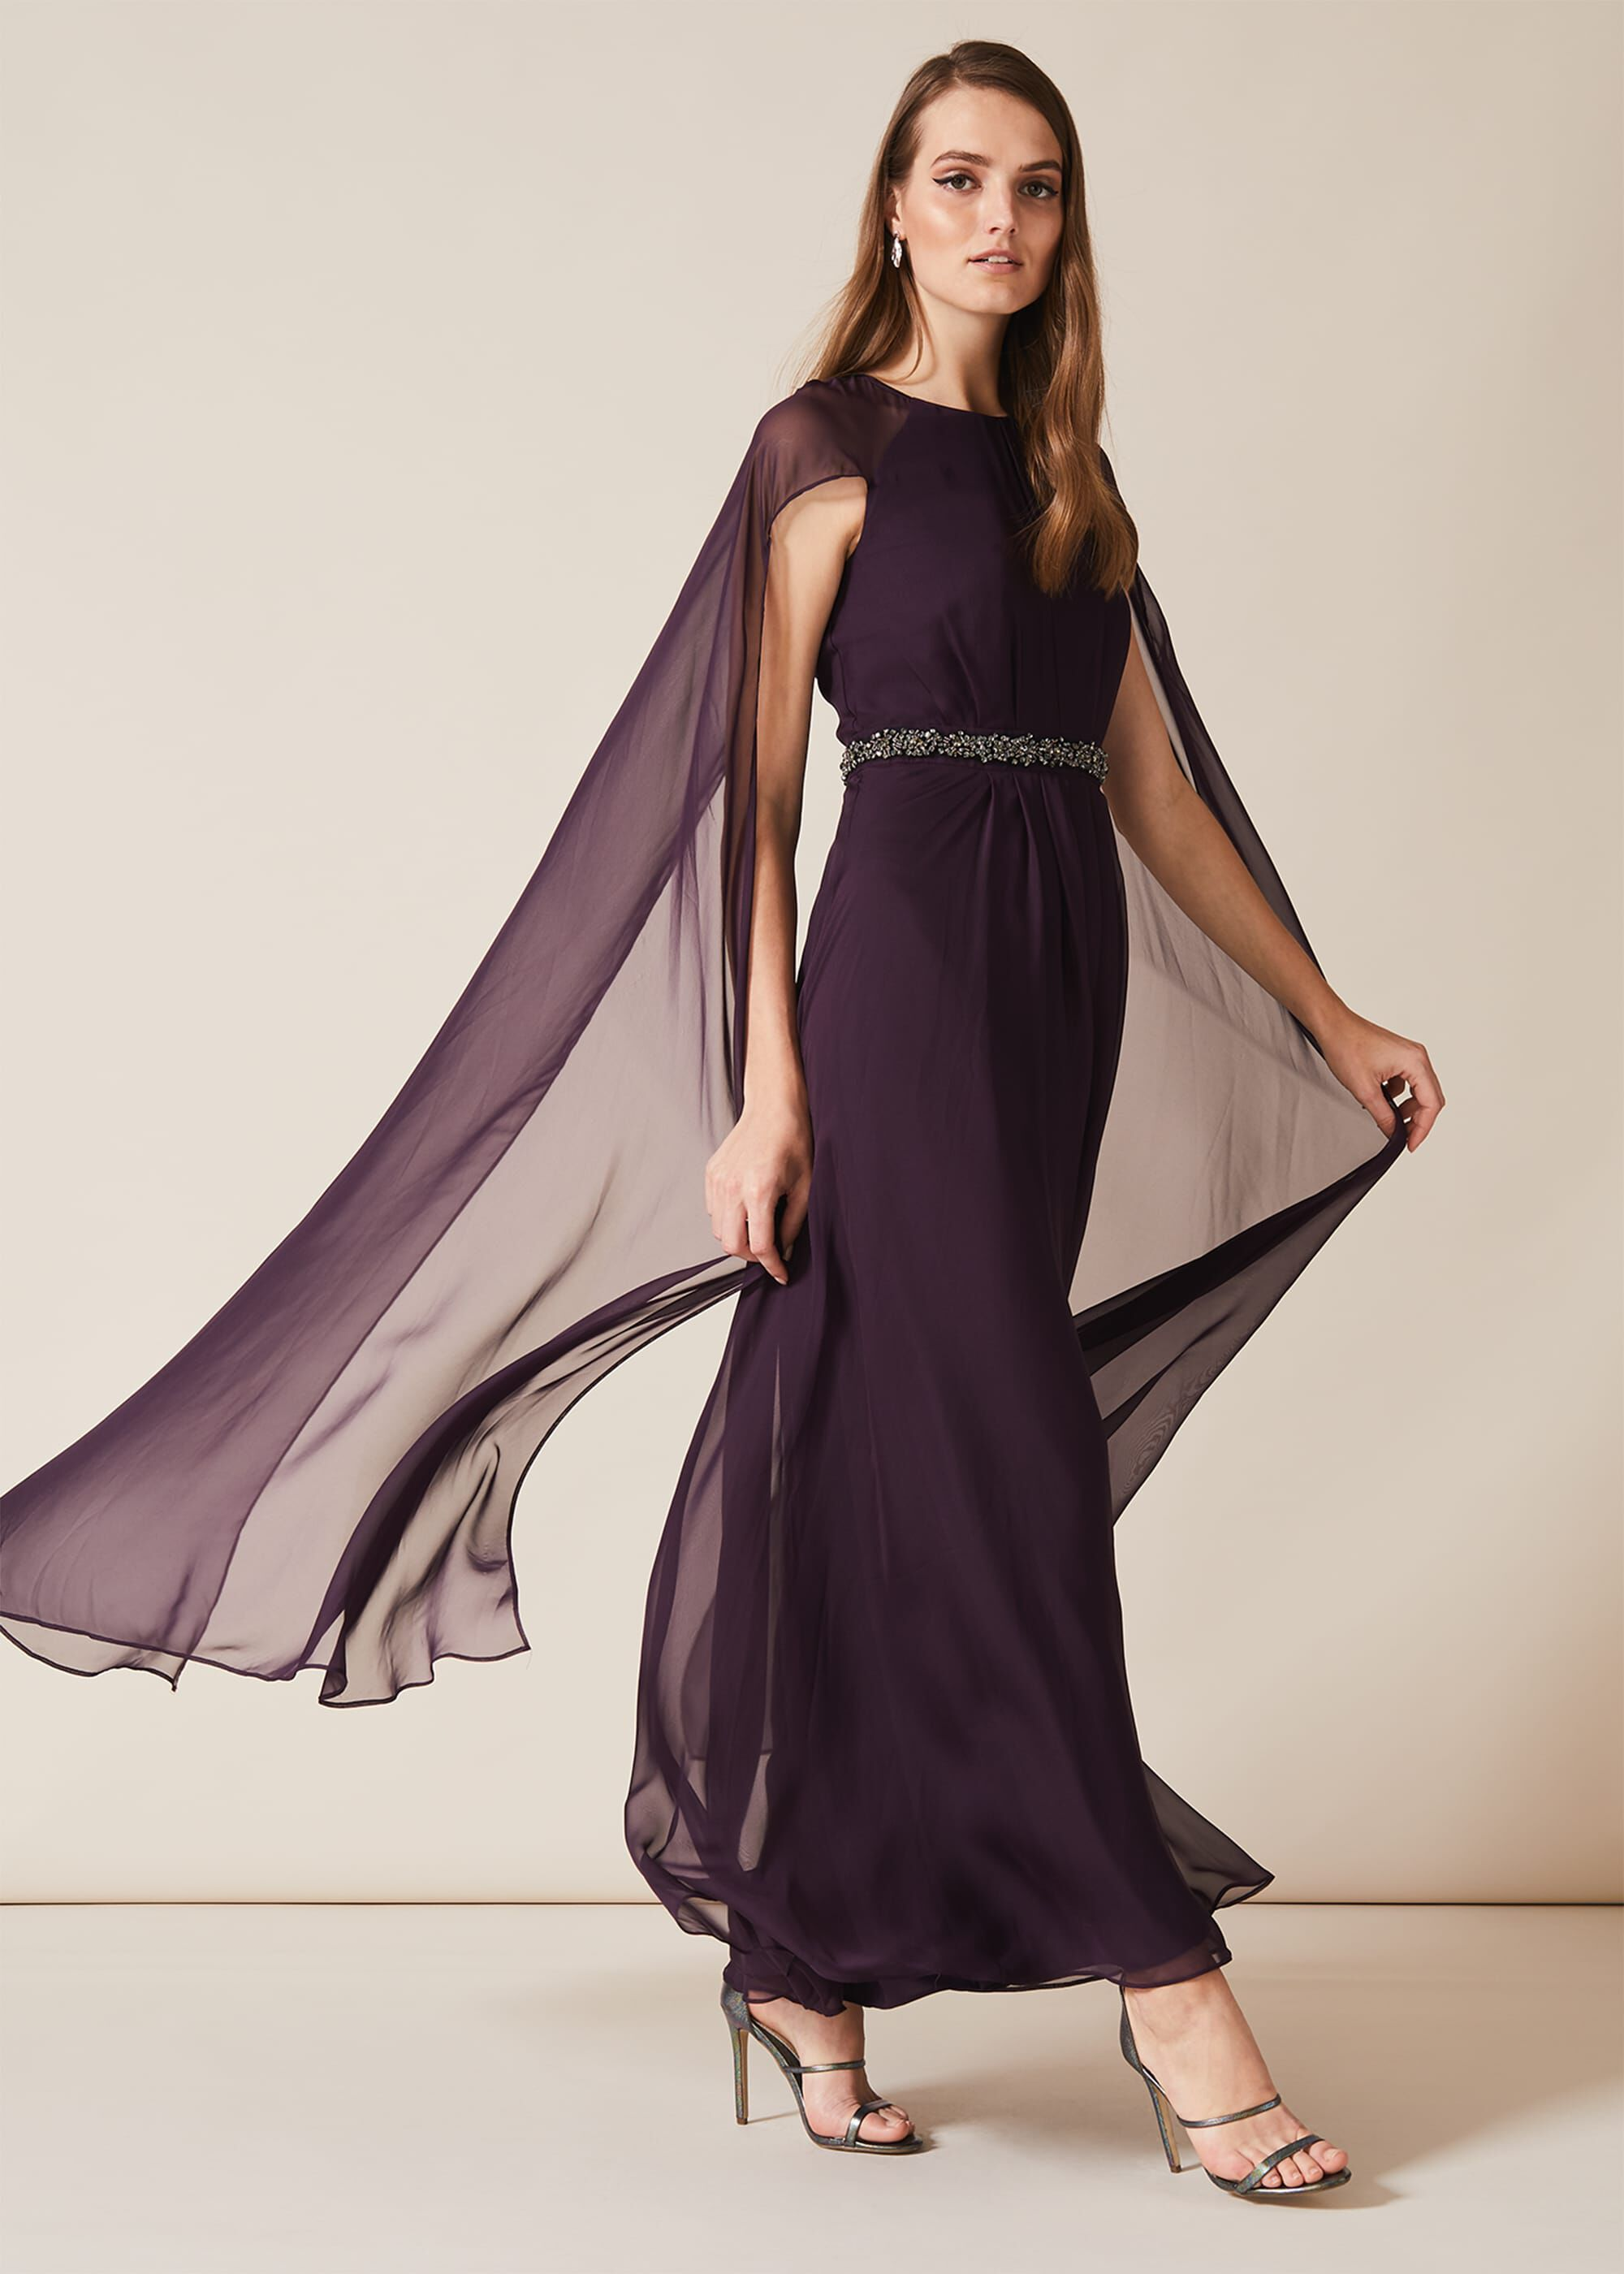 Phase Eight Samira Cape Beaded Dress, Purple, Maxi, Occasion Dress